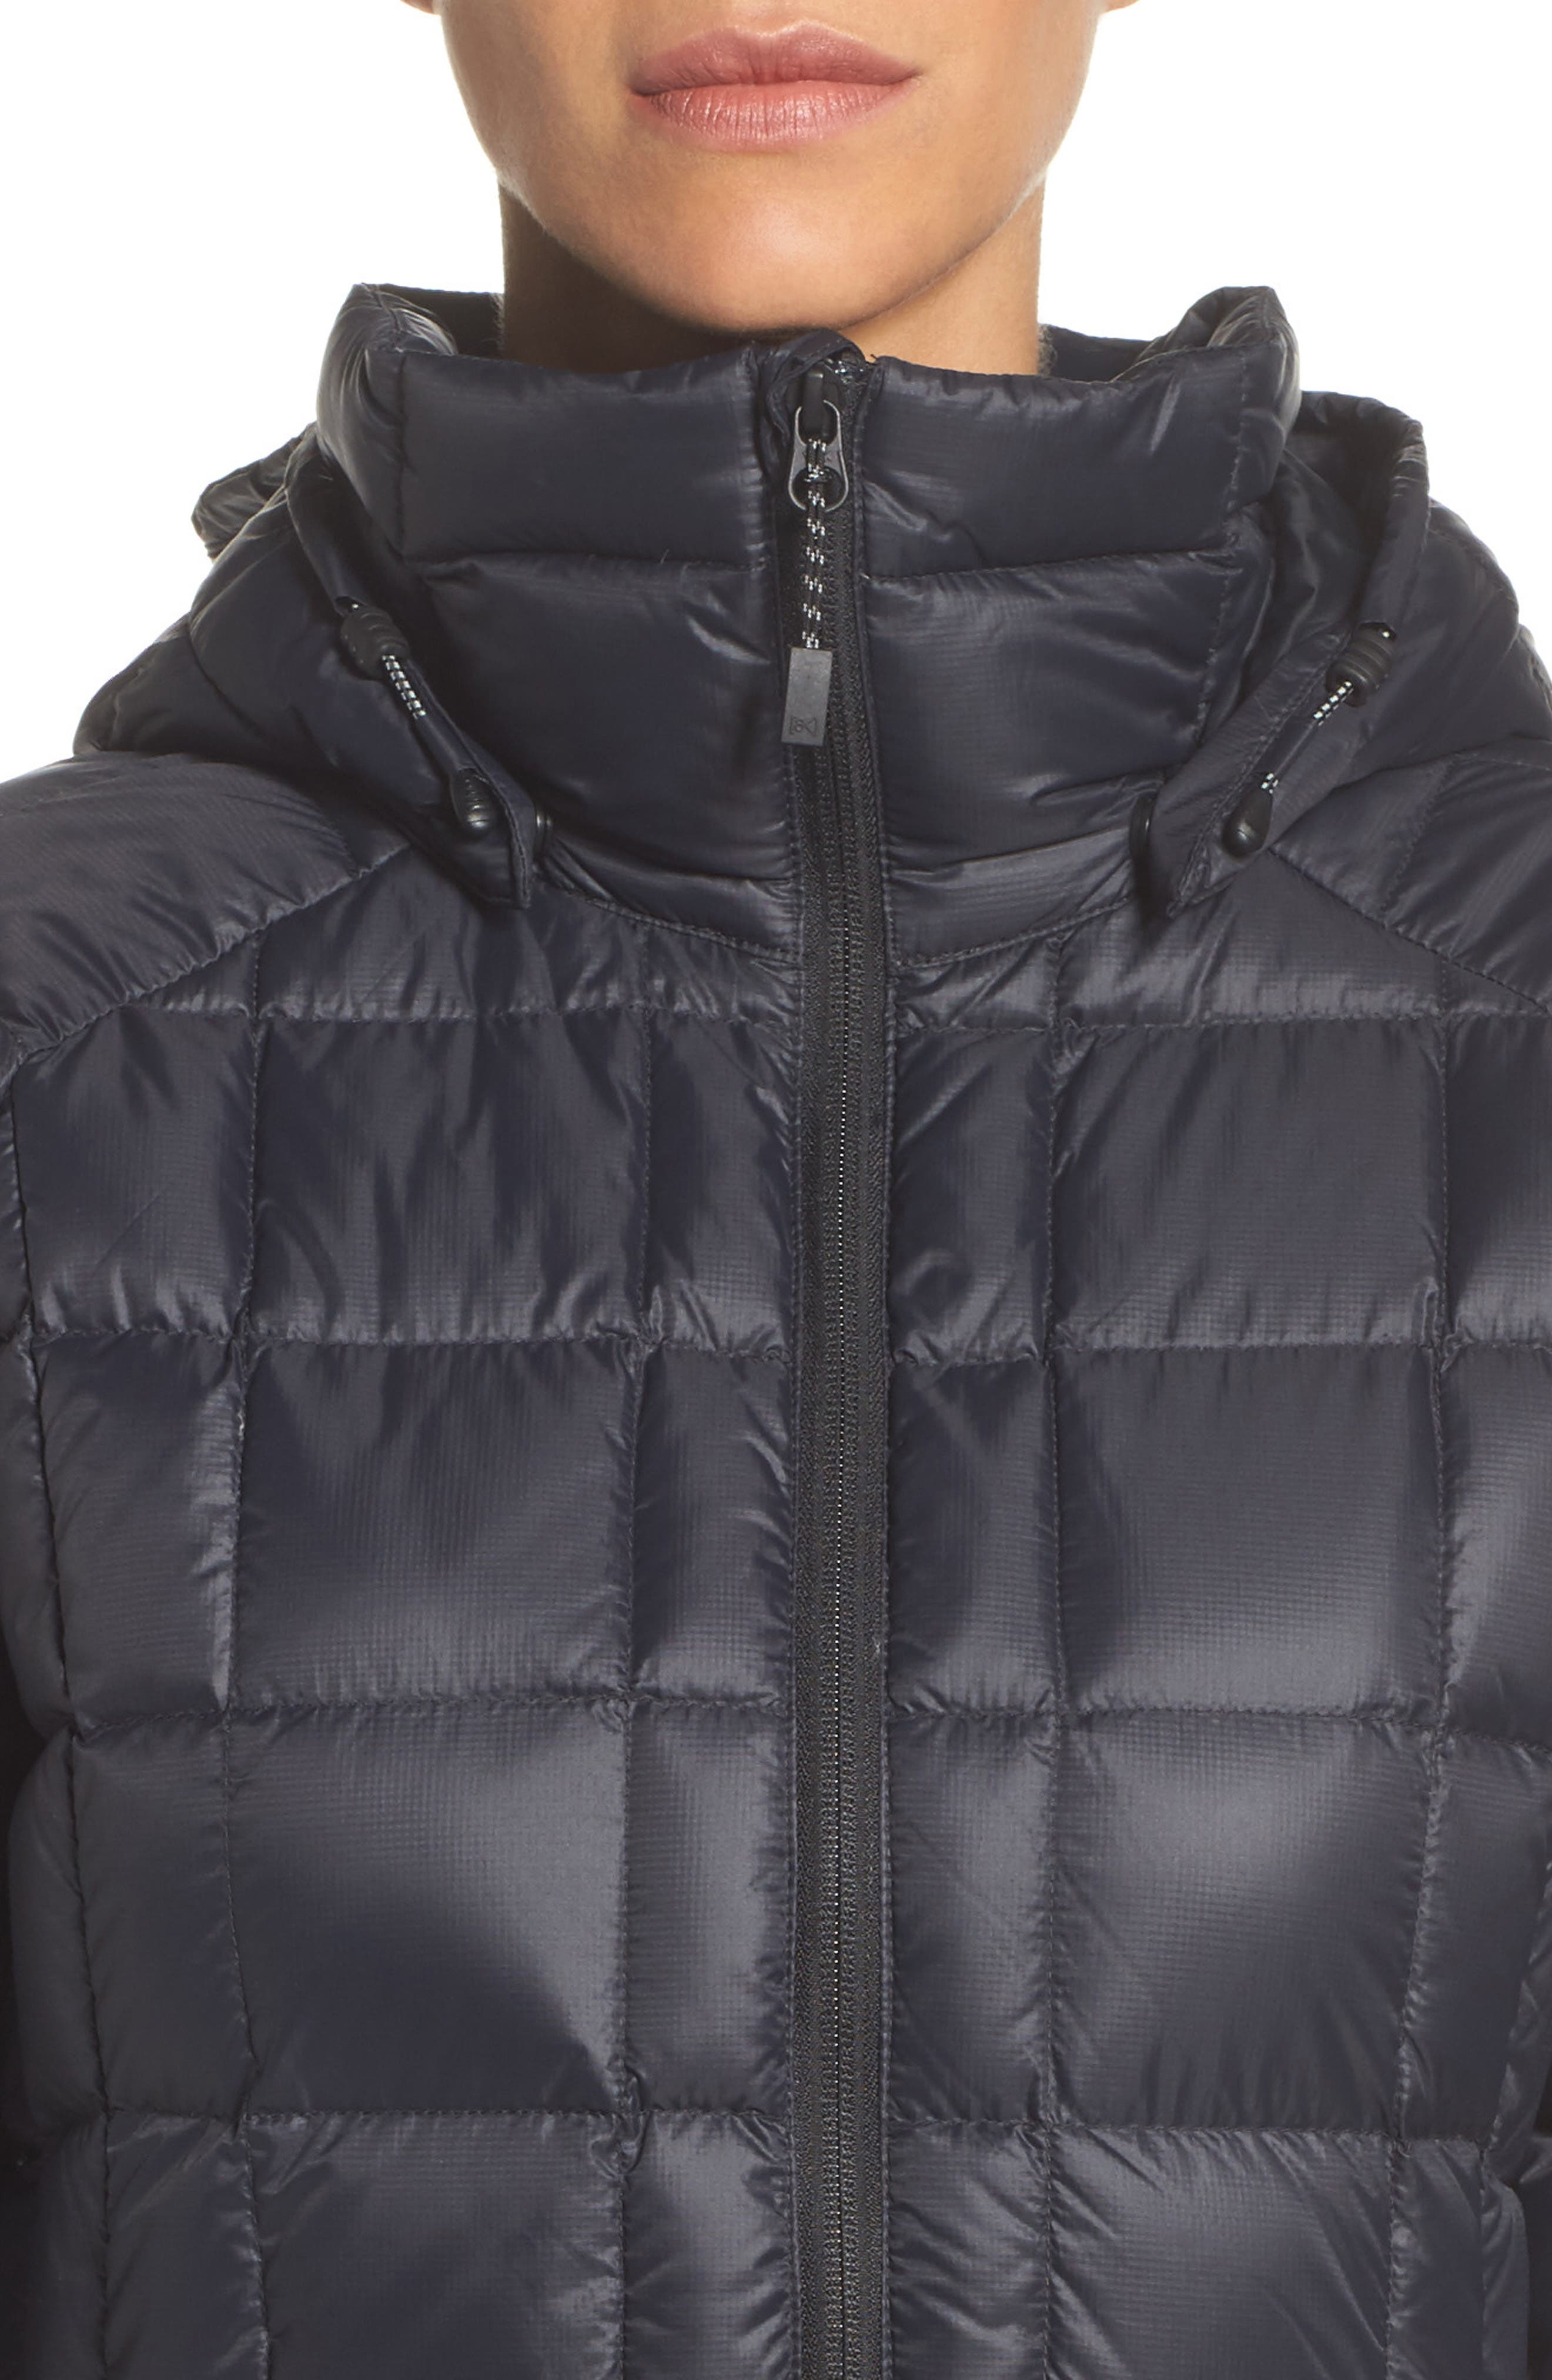 AK Baker Waterproof Quilted Down Insulator Jacket with Removable Hood,                             Alternate thumbnail 4, color,                             001